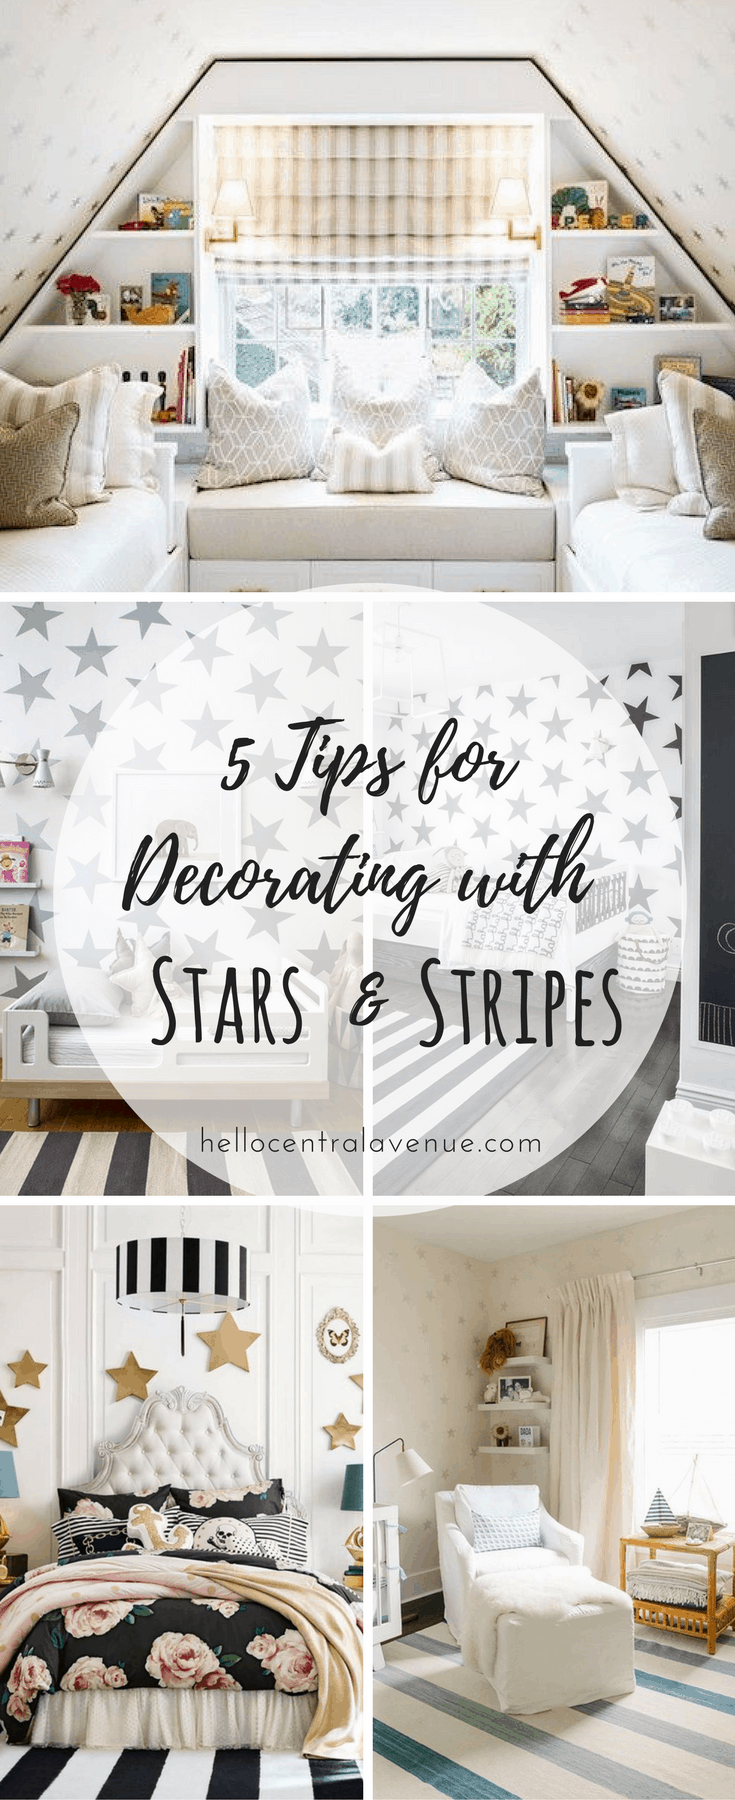 5 Tips for Decorating with Stars and Stripes